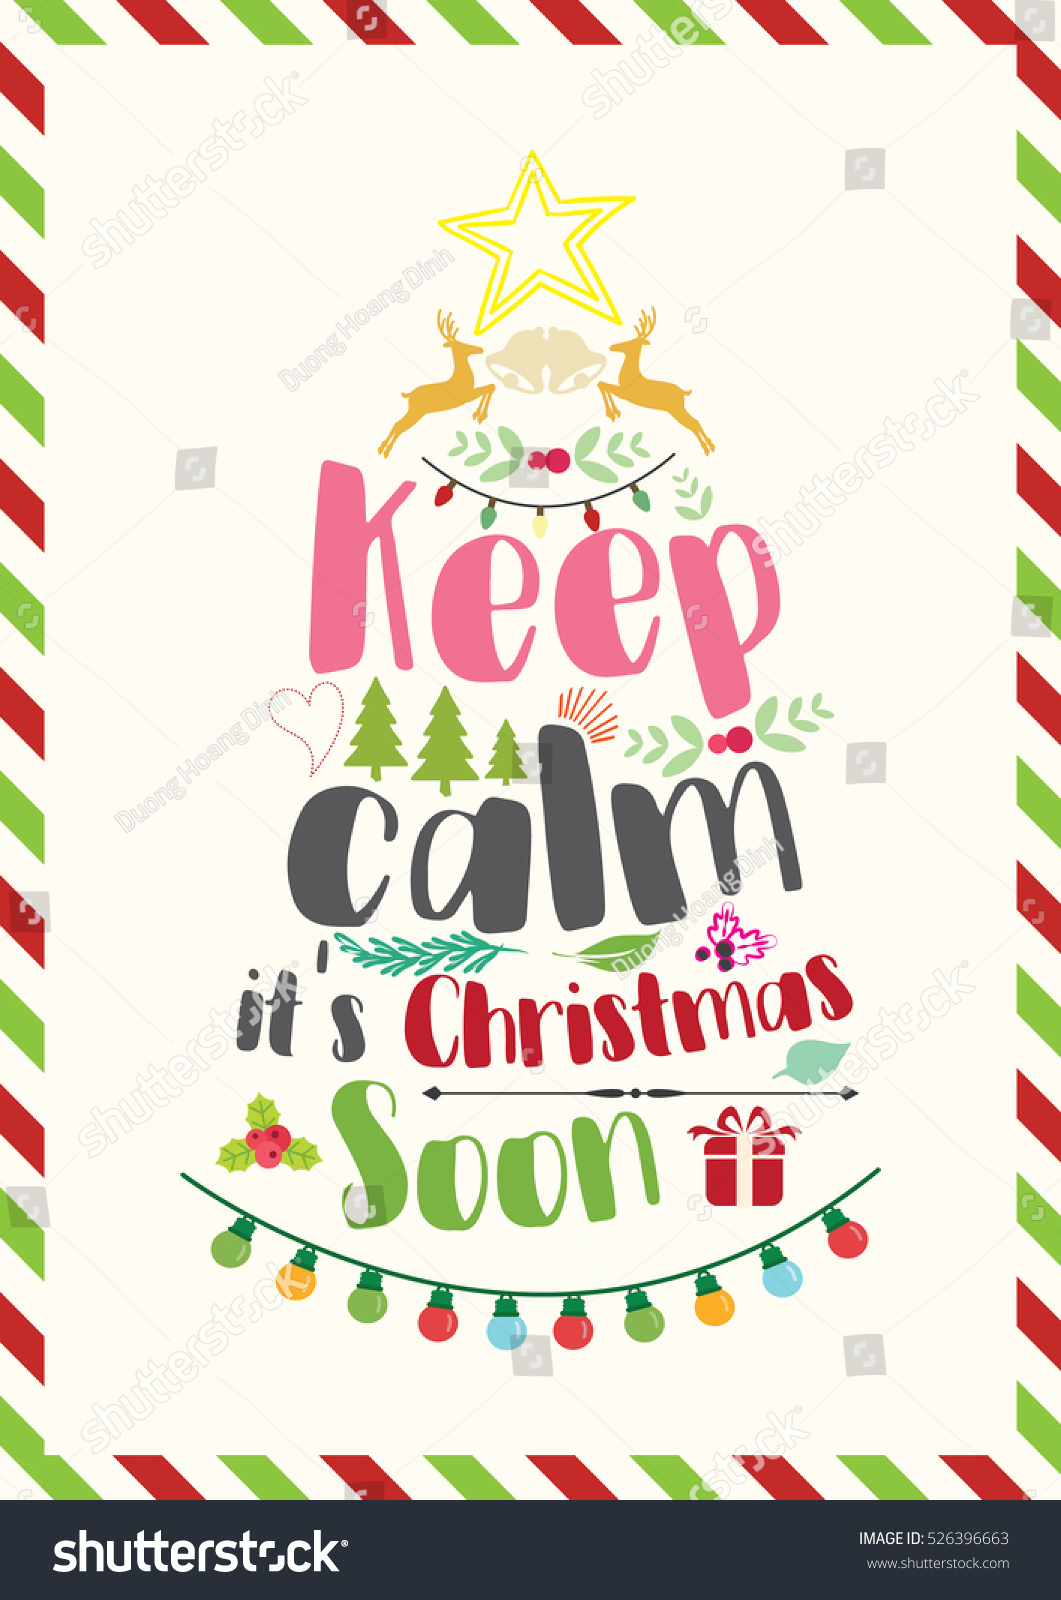 Christmas Quote Keep Calm Christmas Soon Stock Vector (Royalty Free ...